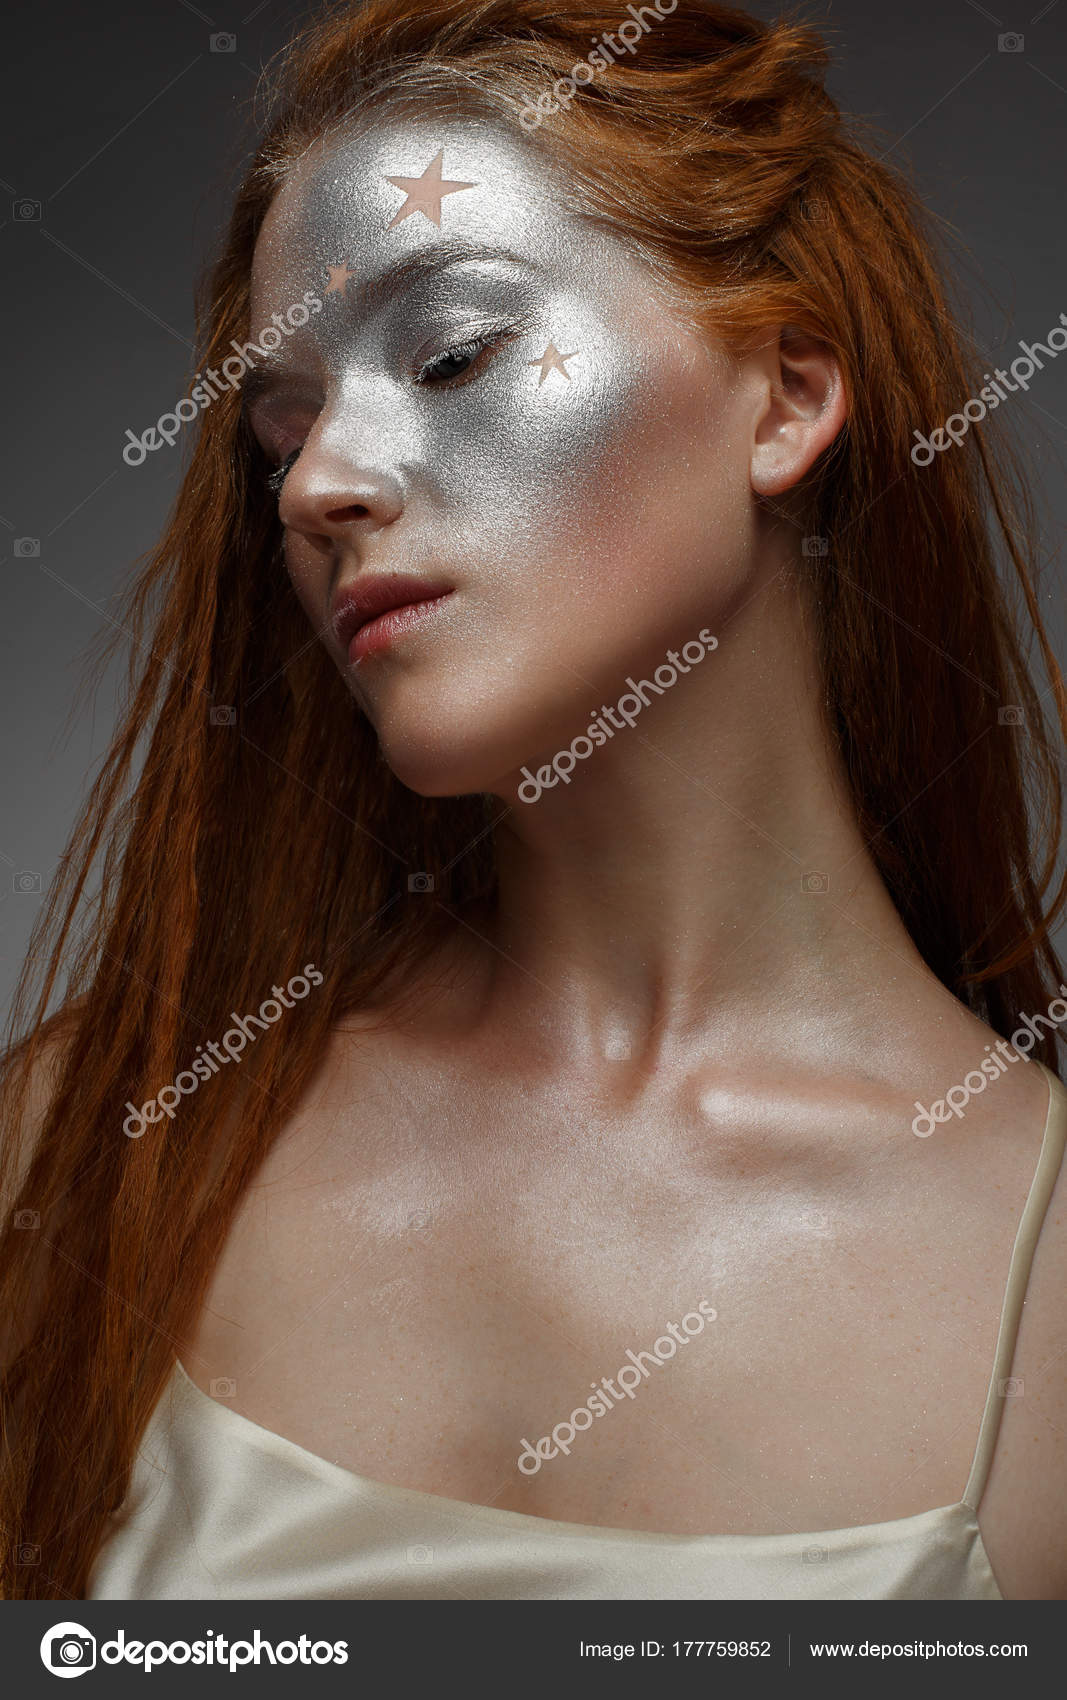 Young Girl Red Hair Brilliant Silver Make Stars Beautiful Model